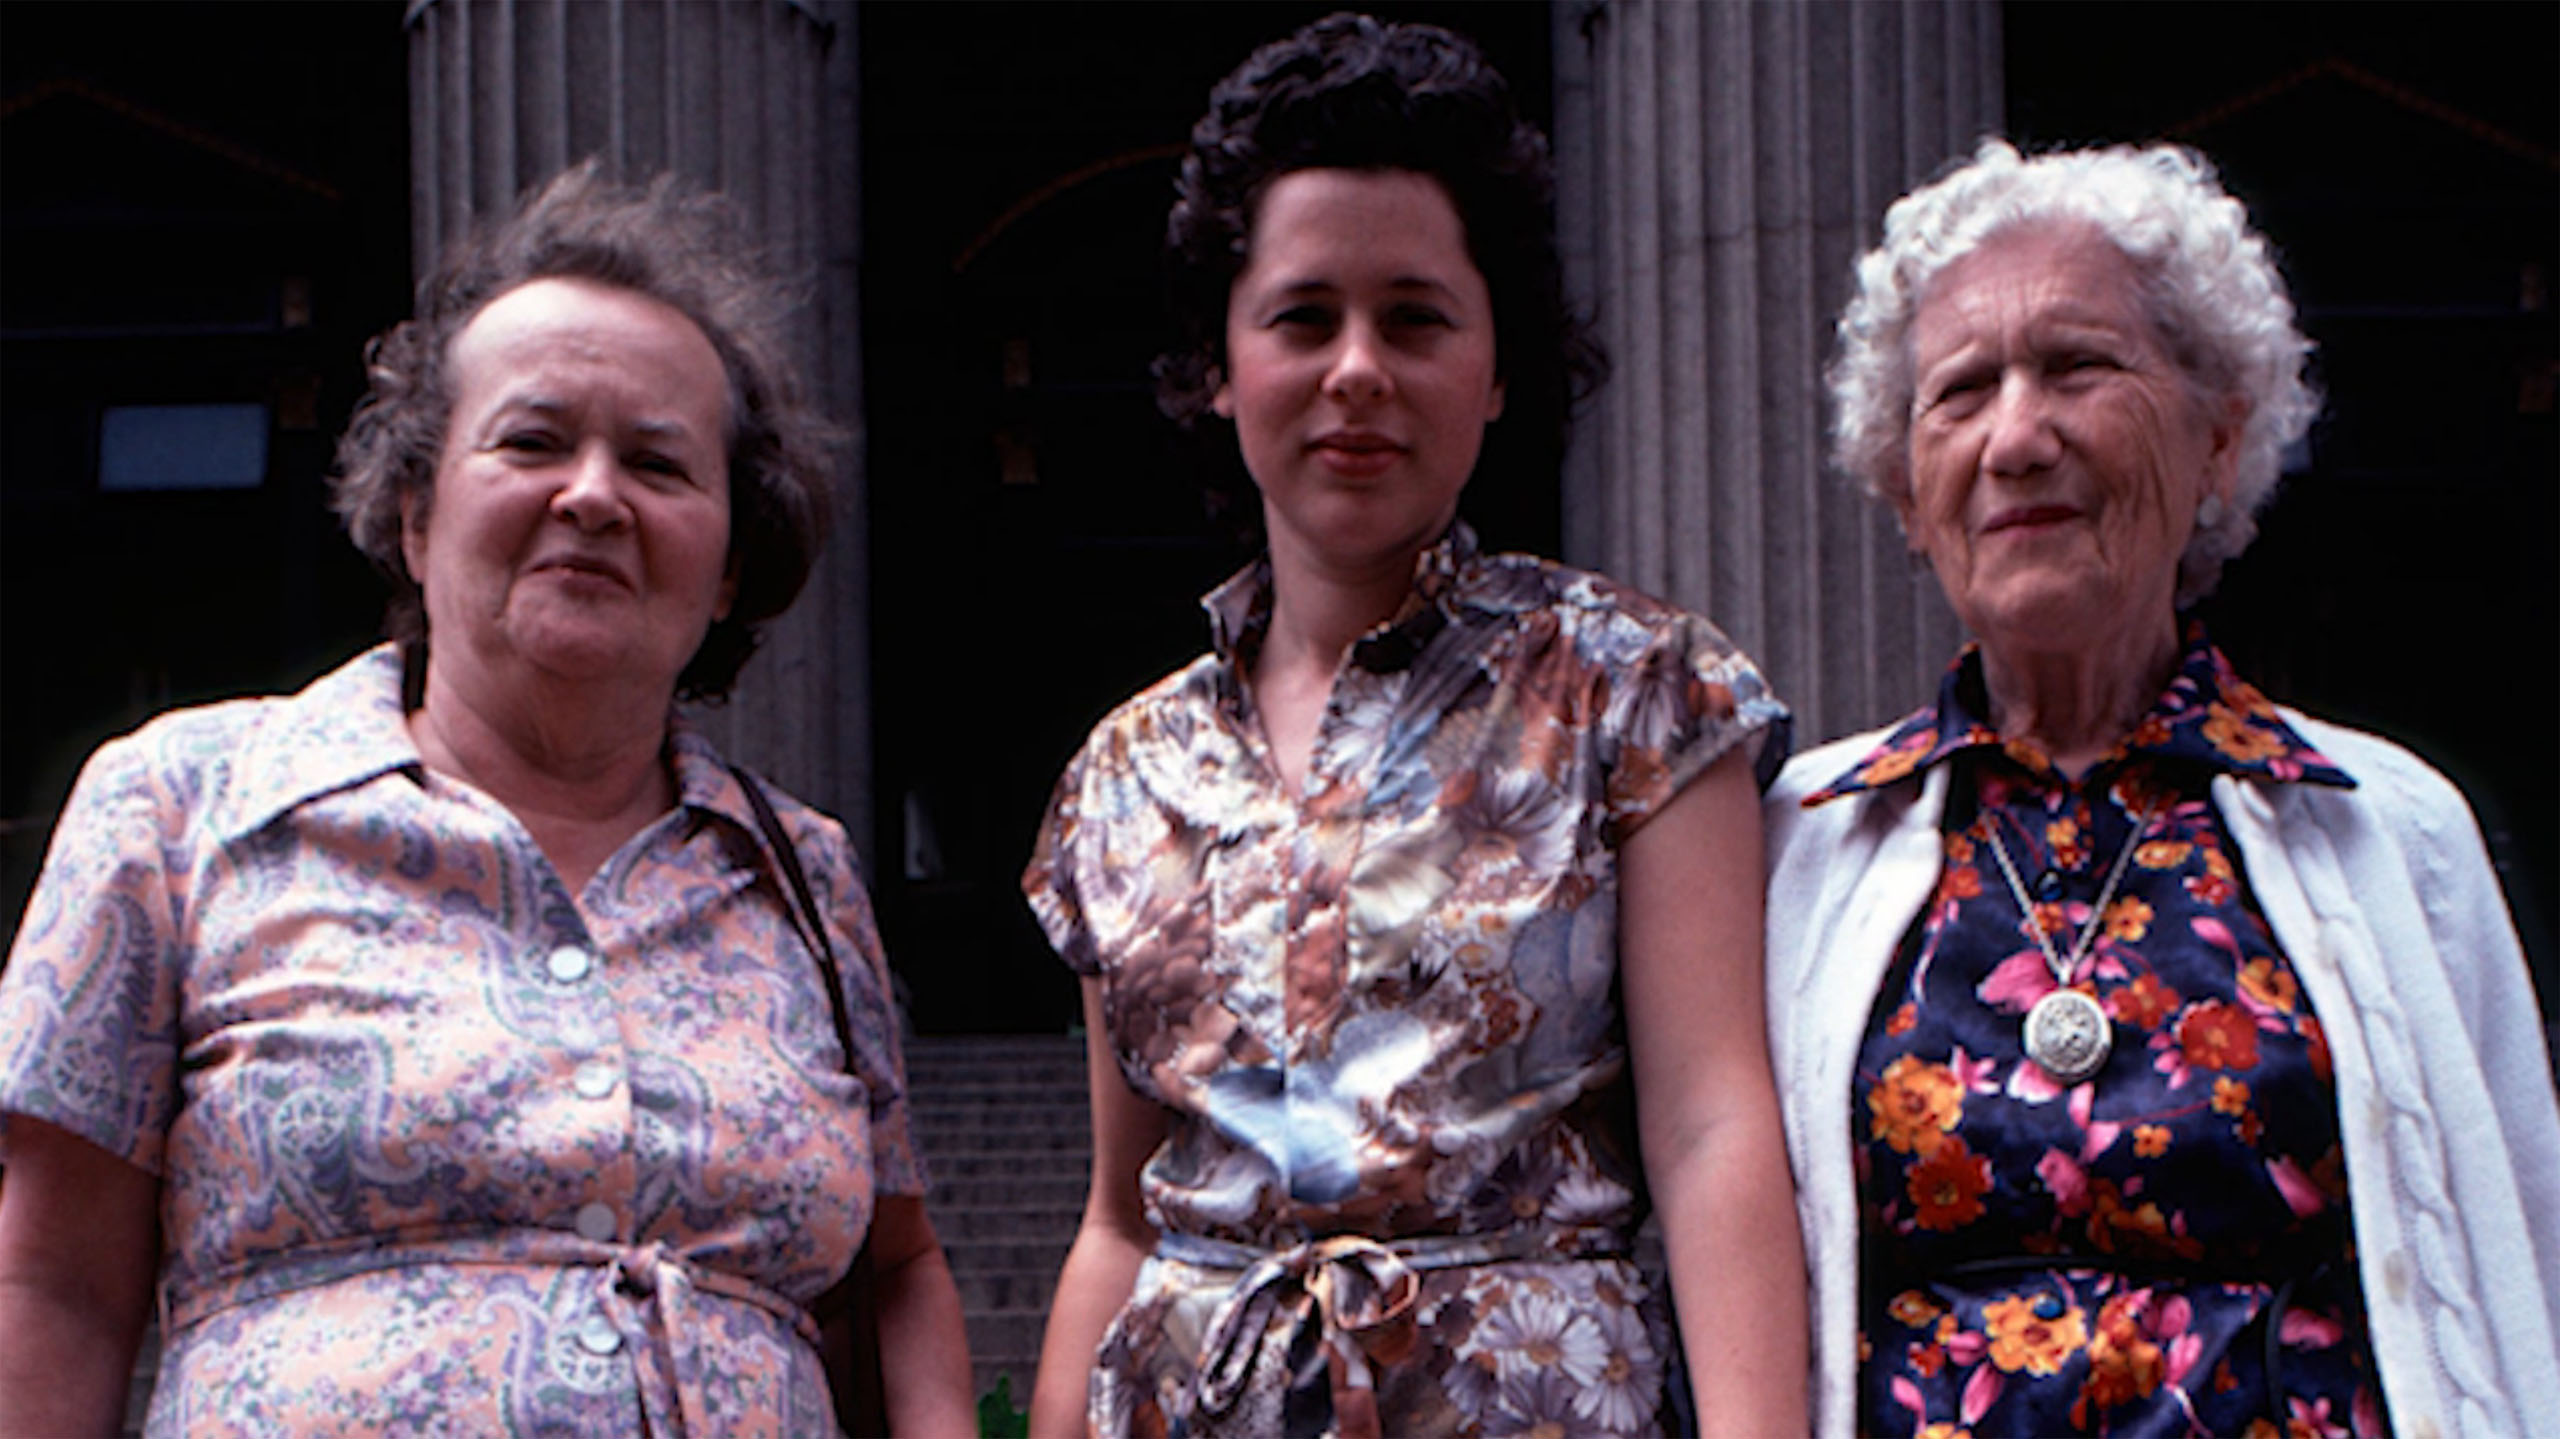 Three generations of mothers